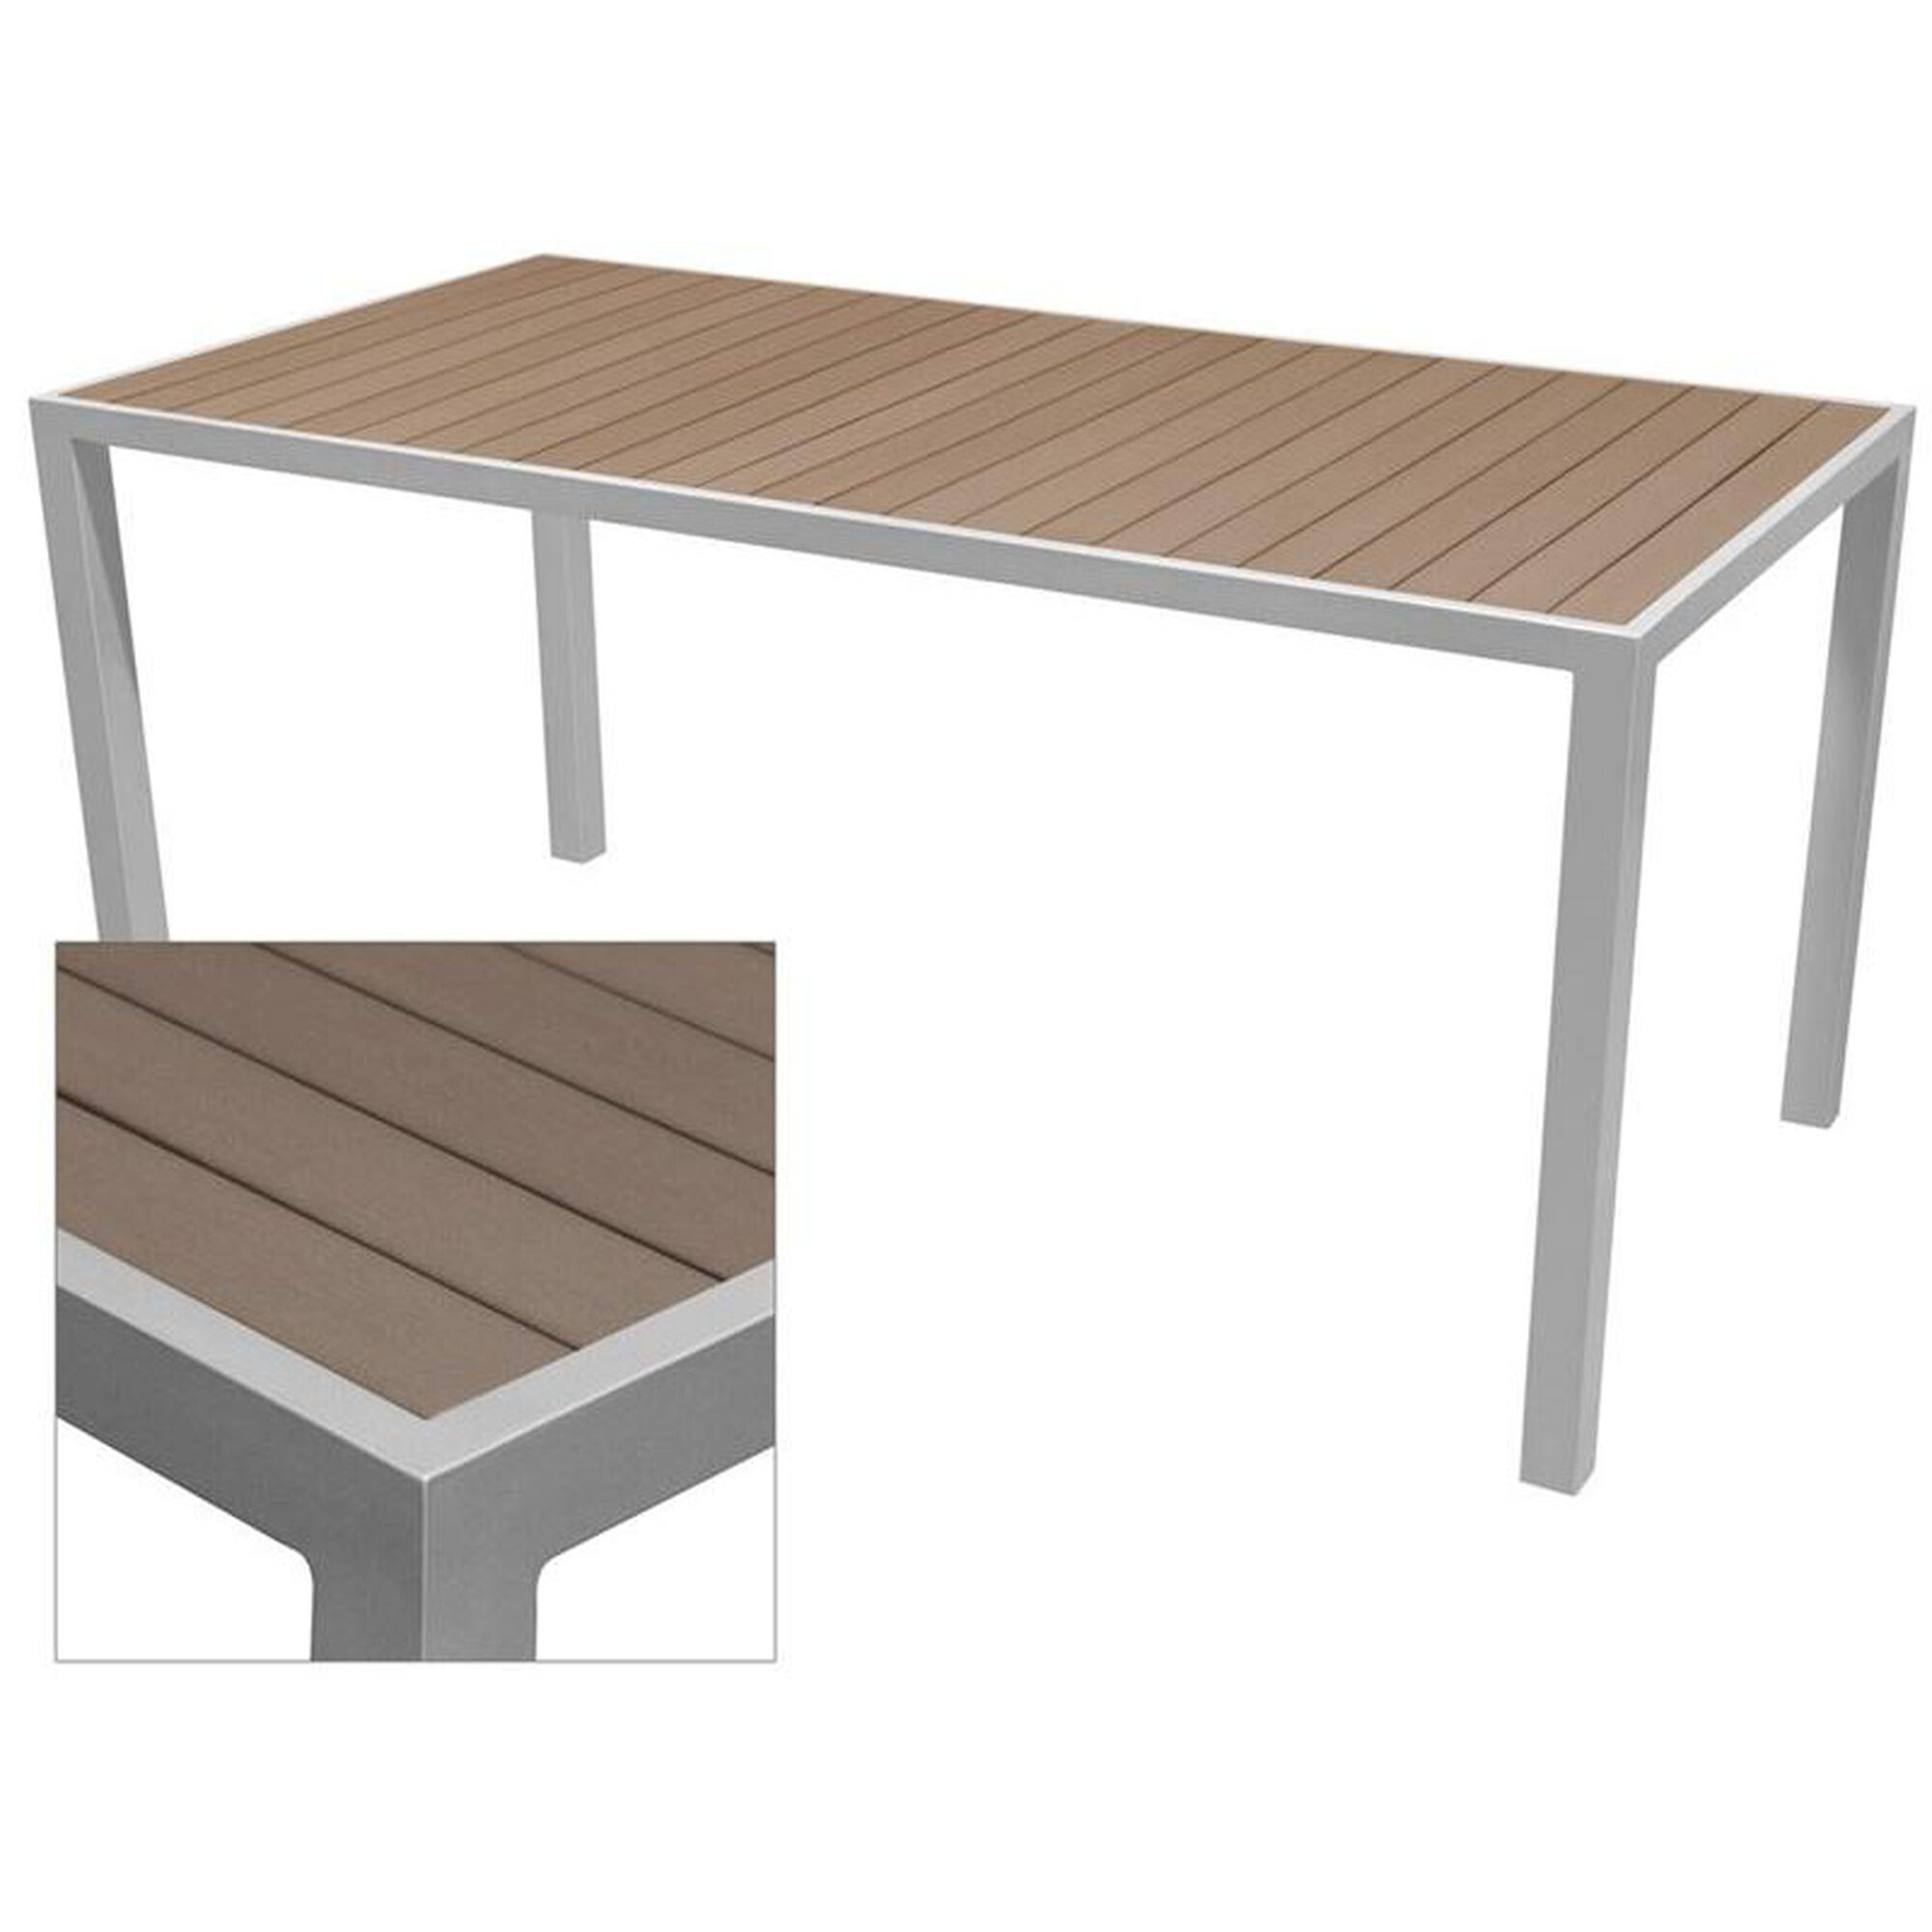 Source contract sedona 32 39 39 x 64 39 39 rectangular table with for Transmutation table 85 items